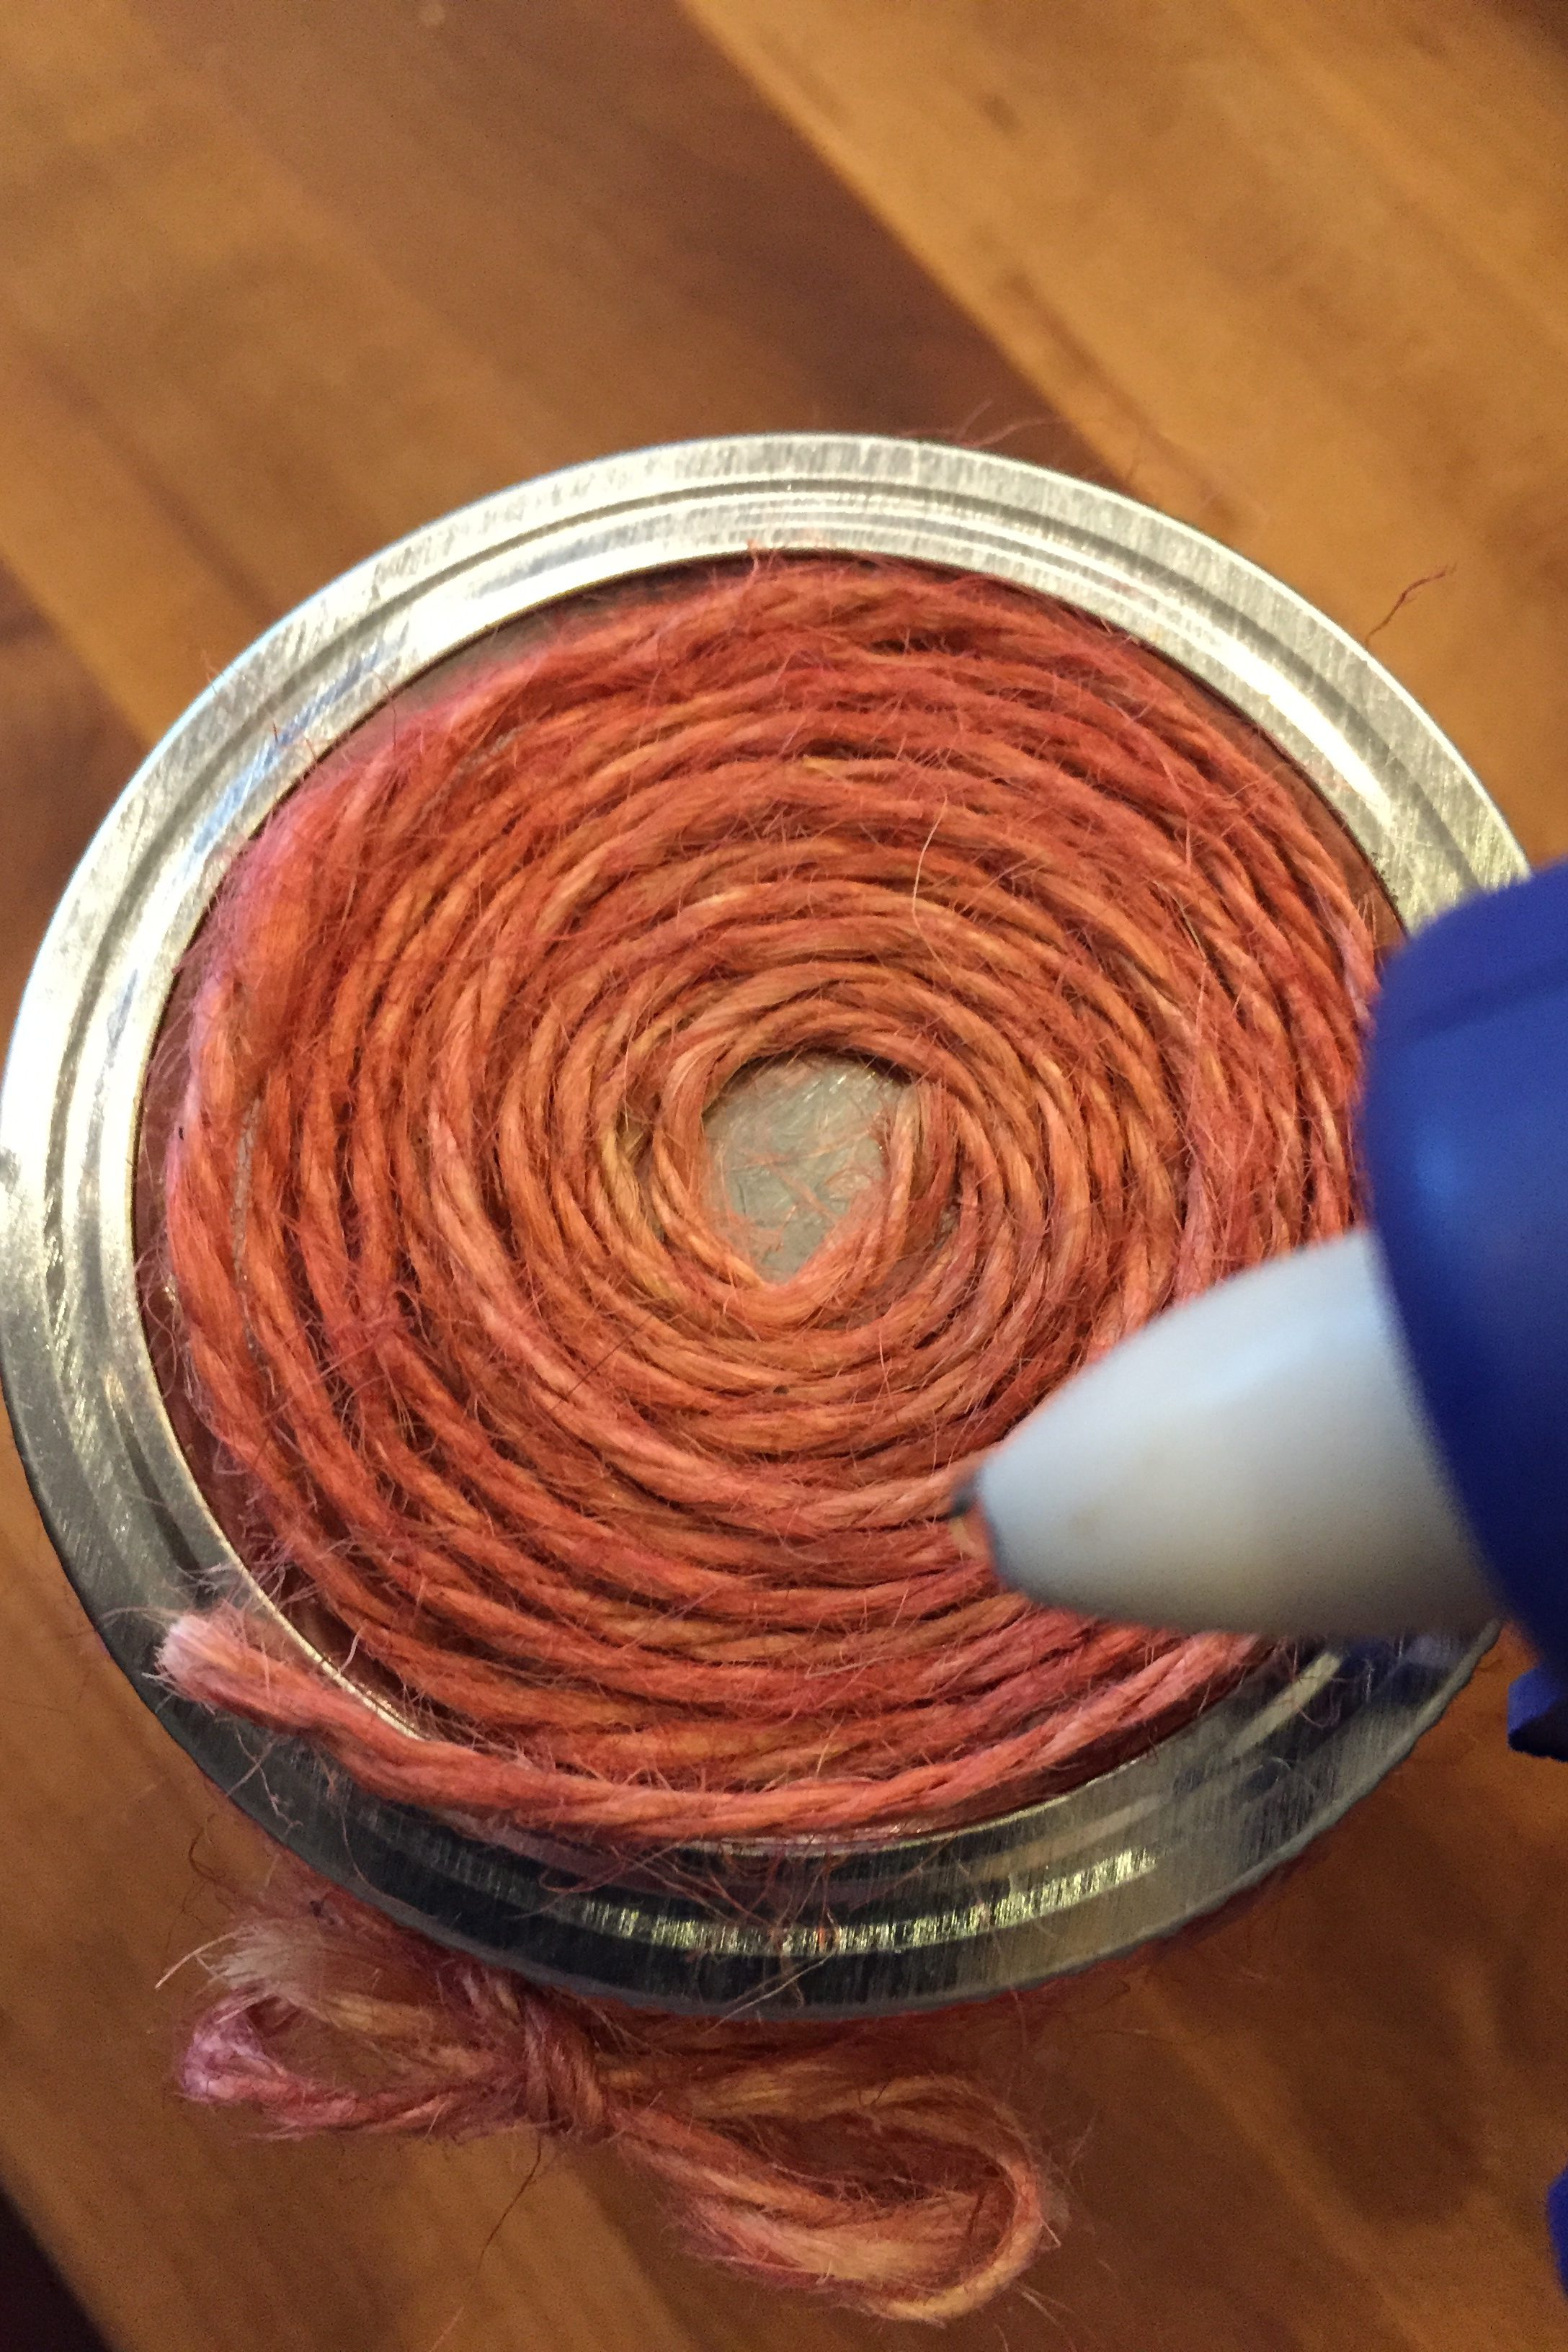 2. Use a touch of glue from a hot glue gun to secure the loose end over top of the spiral. Carefully remove spiral off of top and place aside until step 4.